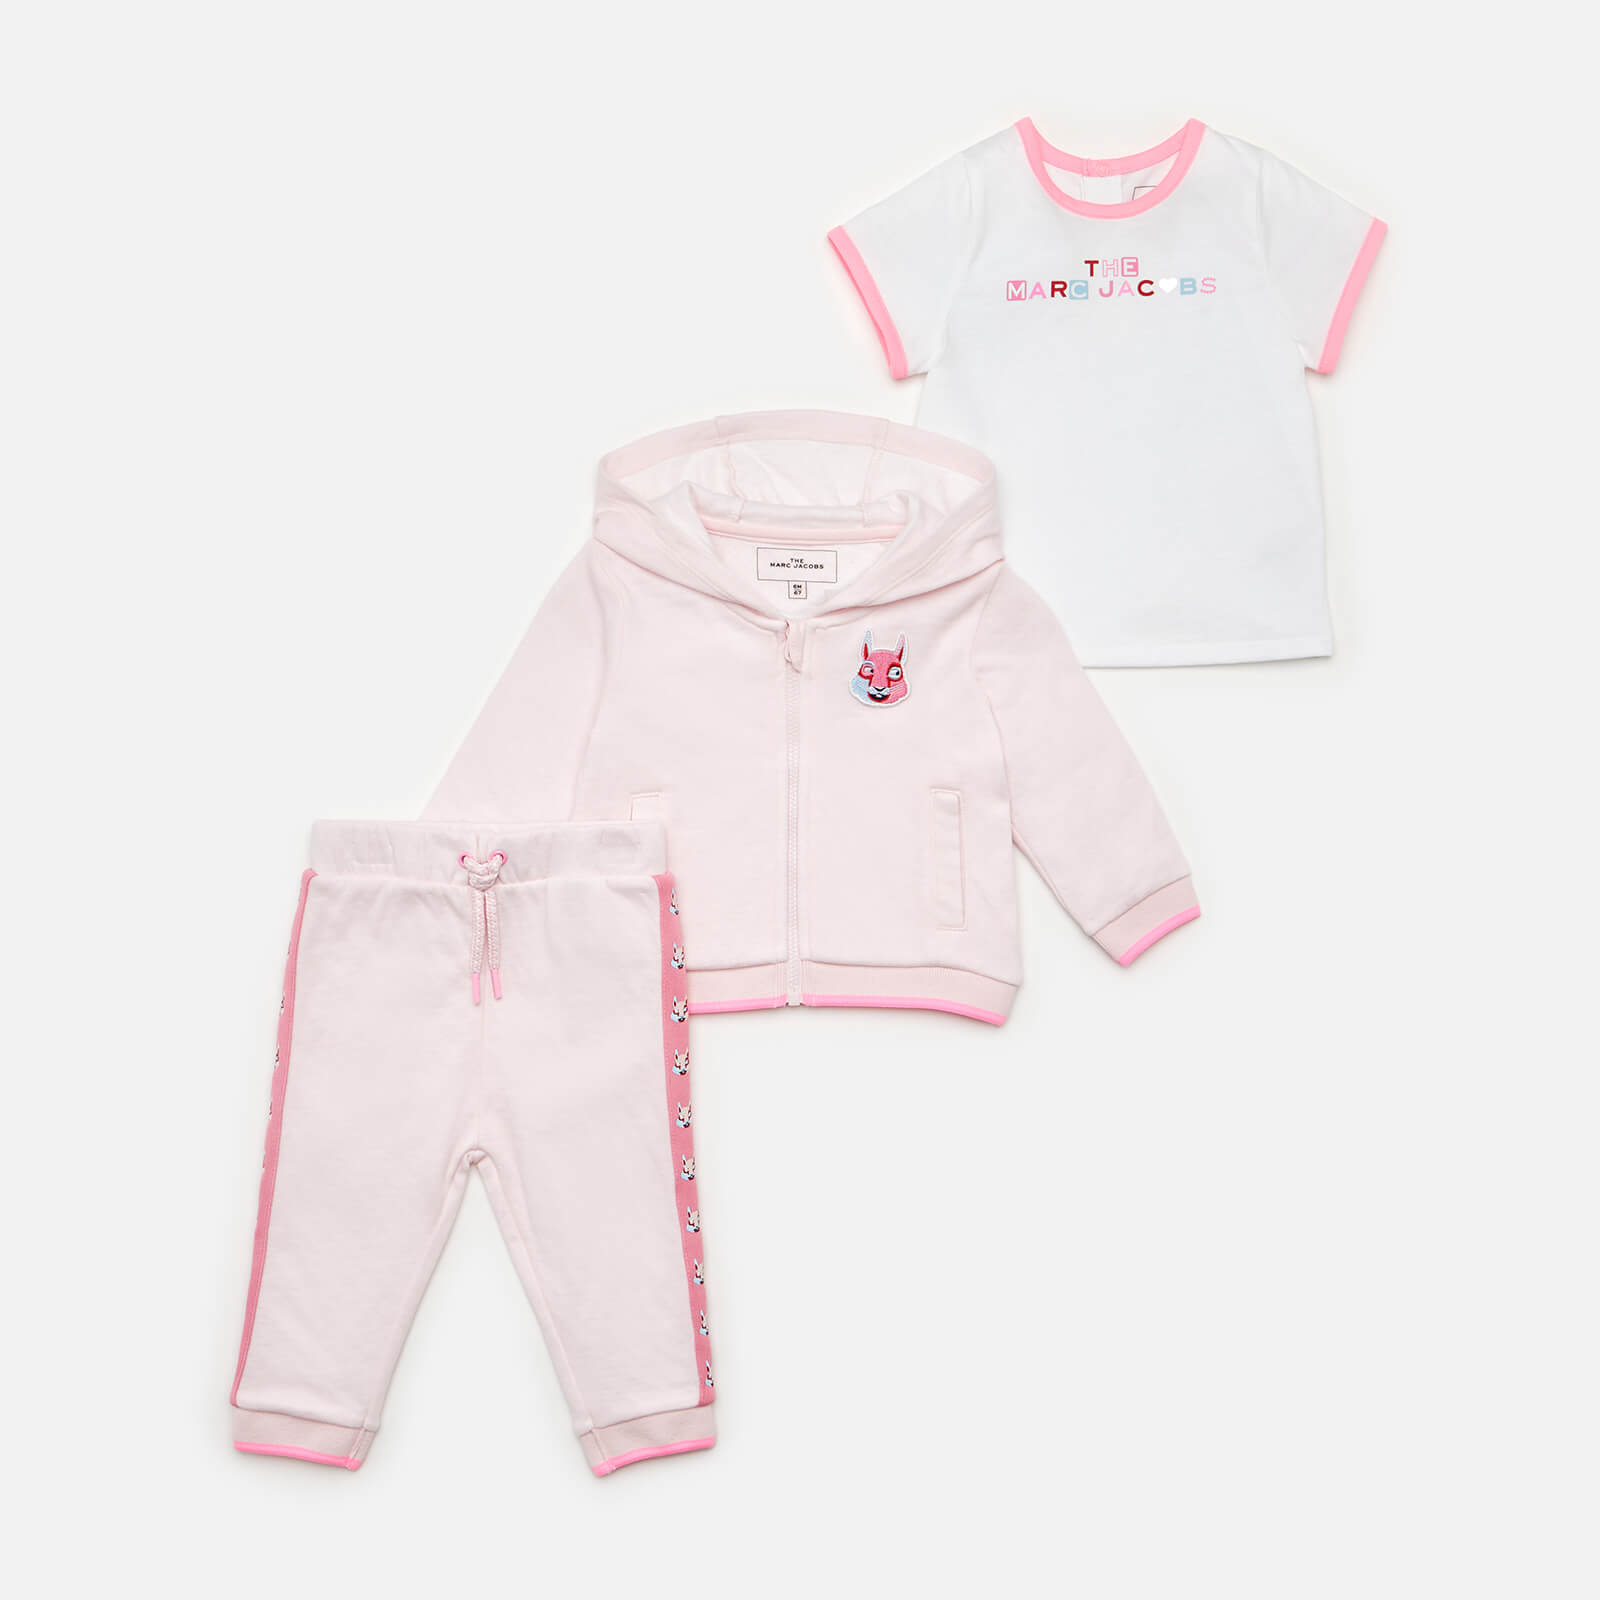 Little Marc Jacobs Baby Girls' Trousers, Jacket And T-Shirt Set - Pink - 12-18 months